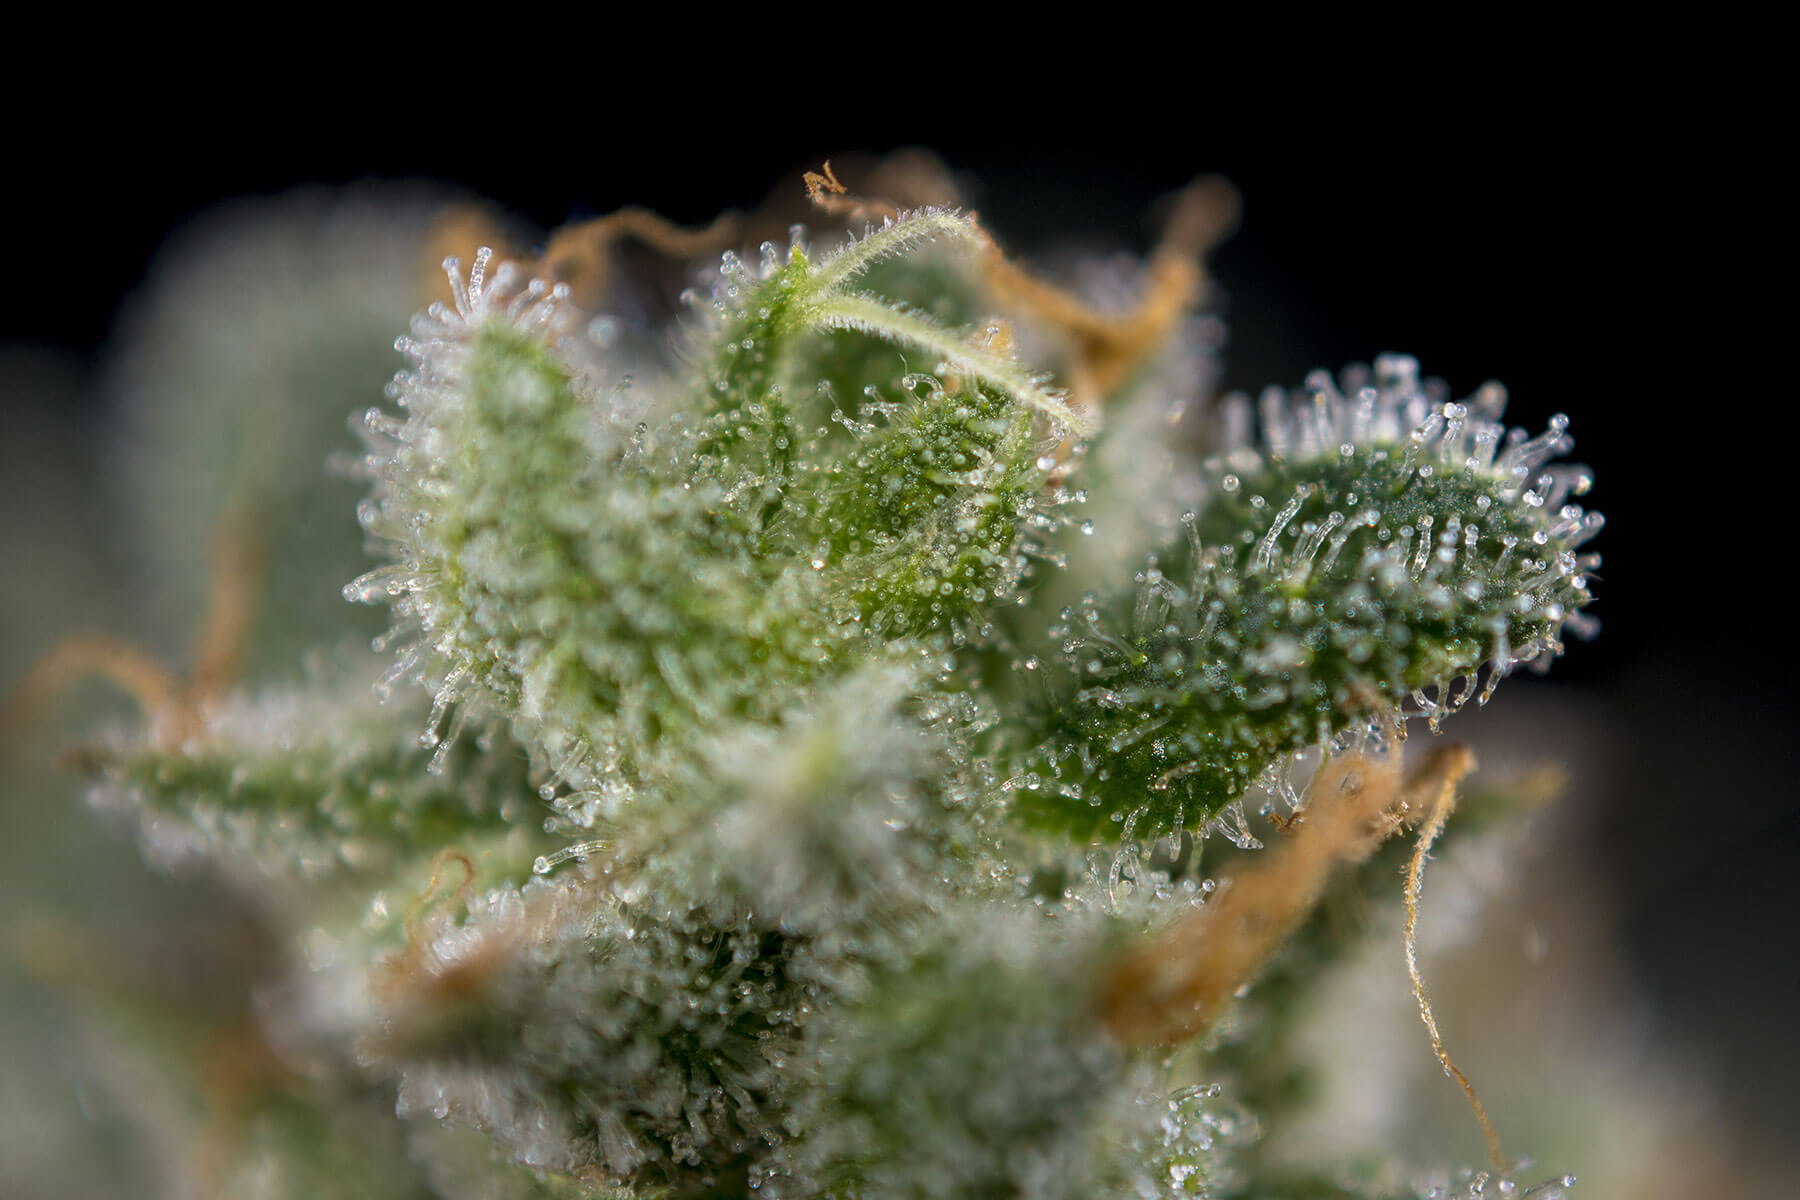 Terpenes and the CBD trichome caps of the cannabis flower